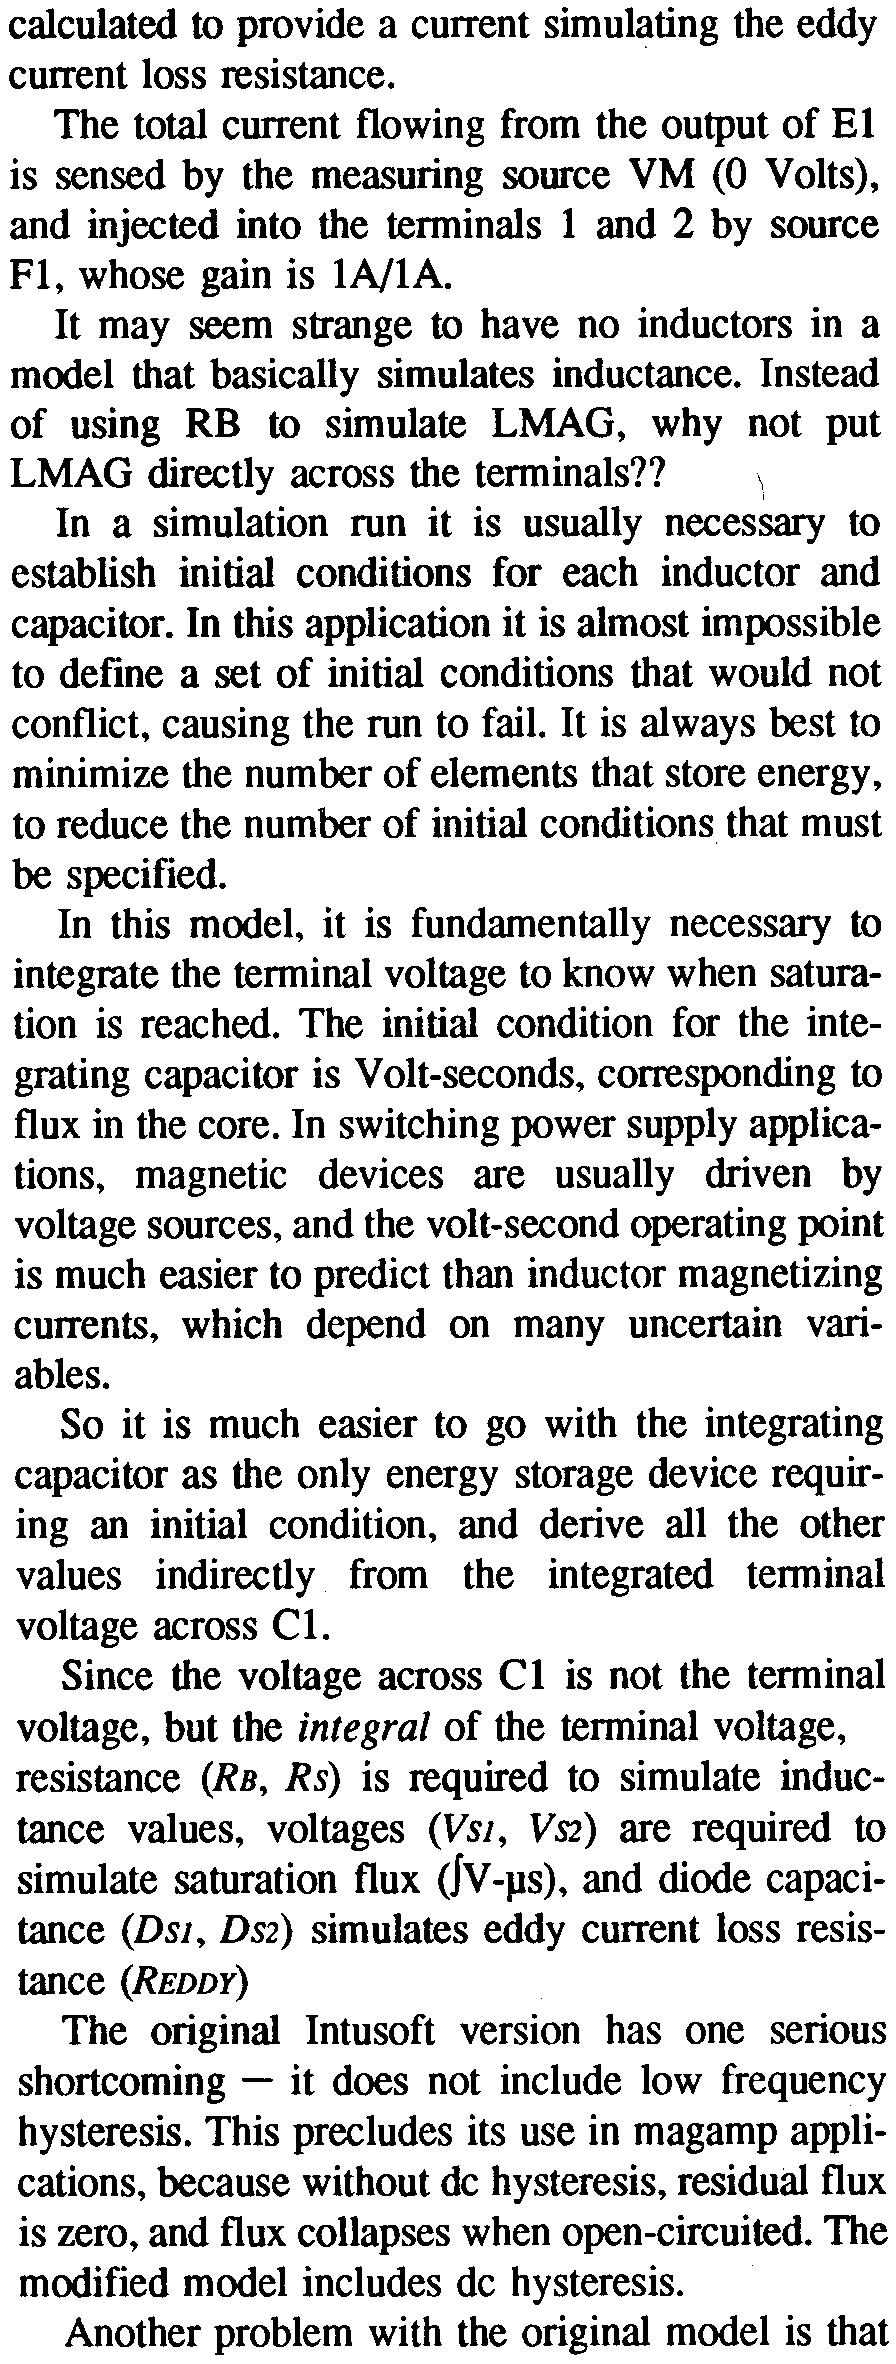 An Electrical Circuit Model For Magnetic Cores Pdf Of Inductor With Ungapped Core In This Application It Is Almost Impossible To Define A Set Initial Conditions That Would